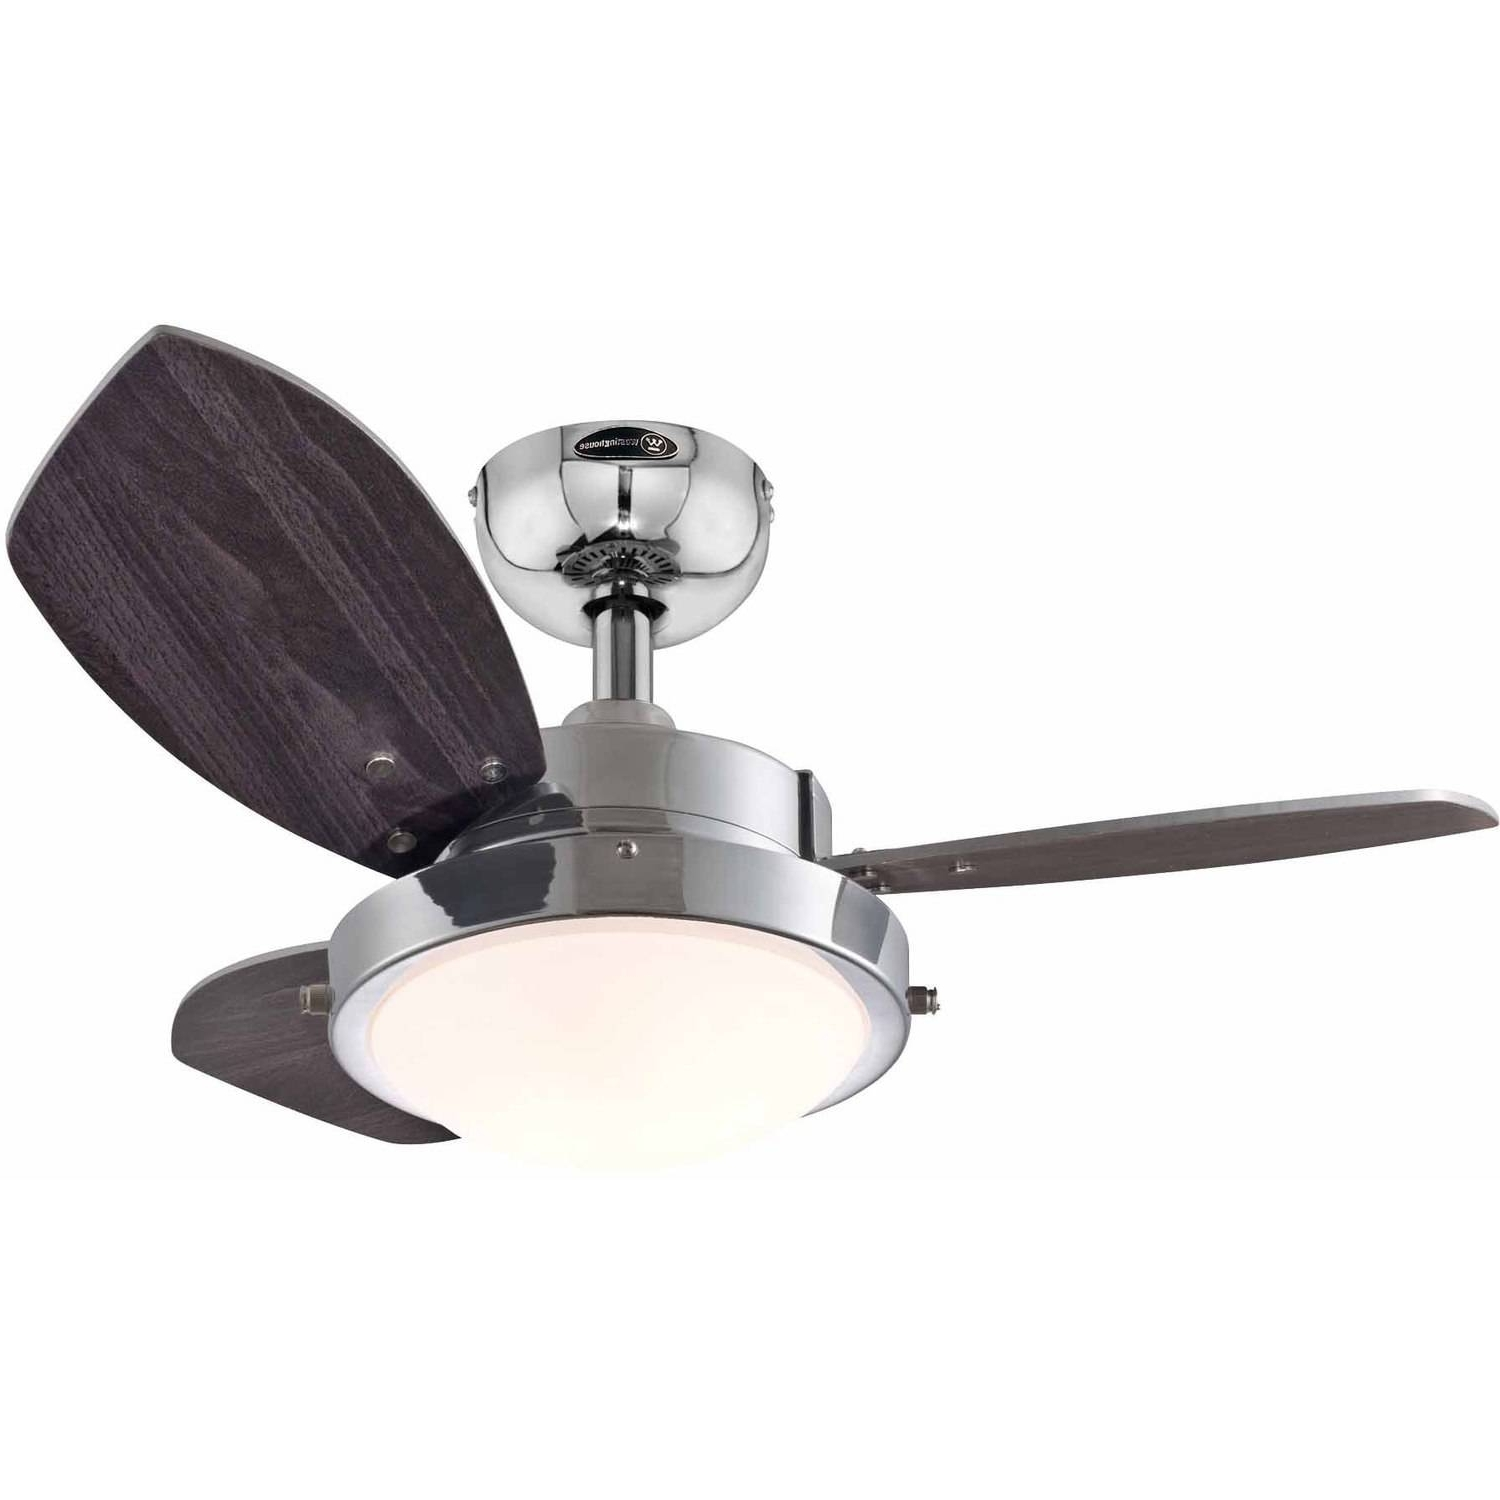 "Westinghouse 7224300 24"" Quince Reversible Indoor Ceiling Fan Inside Best And Newest Outdoor Ceiling Fans At Walmart (View 19 of 20)"